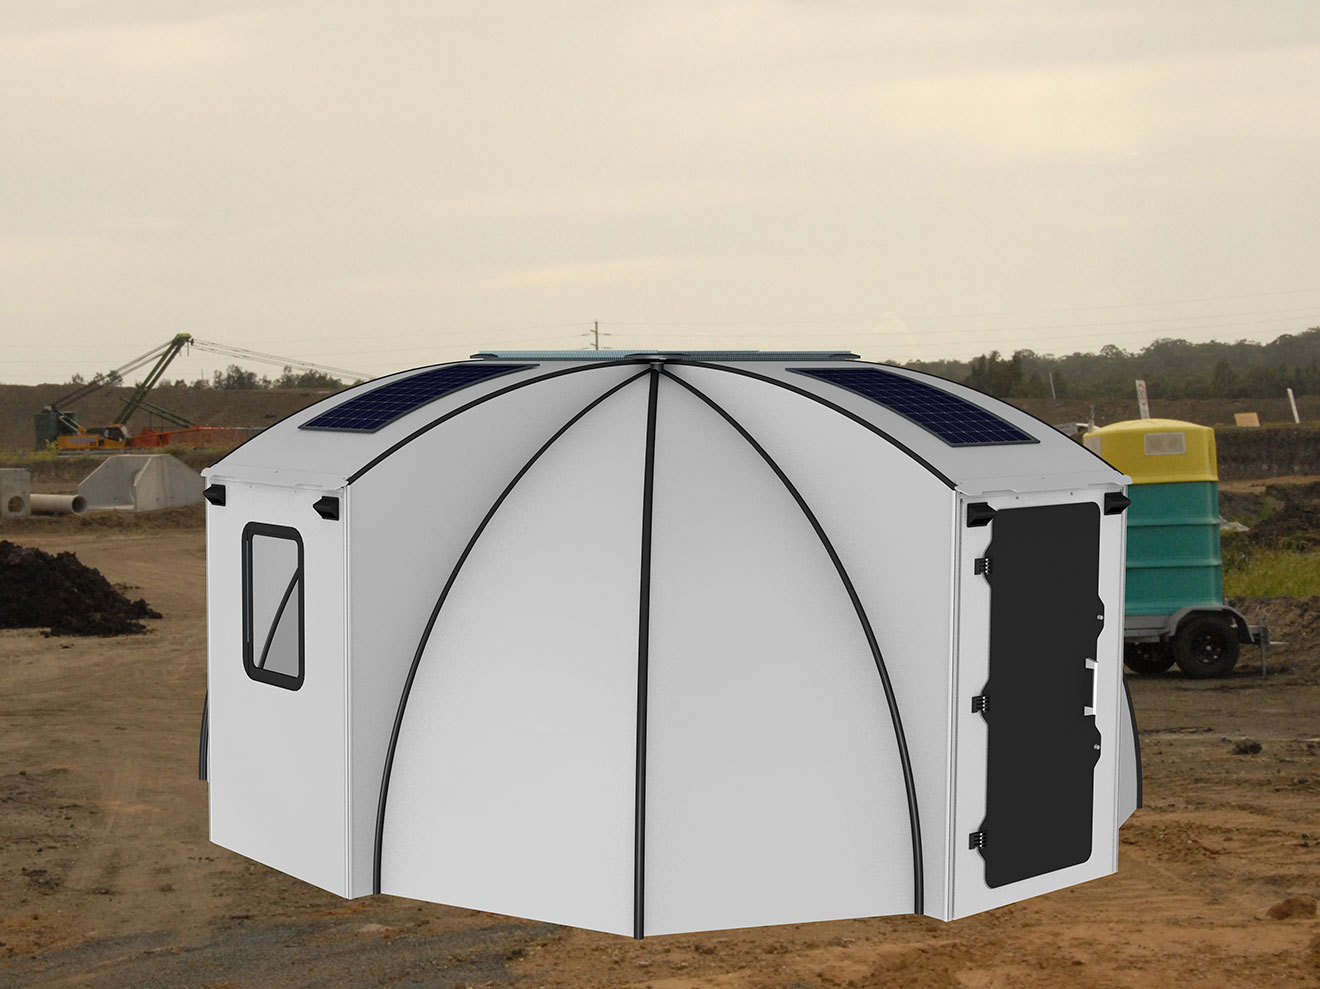 Safe and Solid - The FlexDome provides a solid structure that is wind- and waterproof, as well as flame resistant. Ventilation and natural light are supplemented with LED lights. Additional solar cells are available.